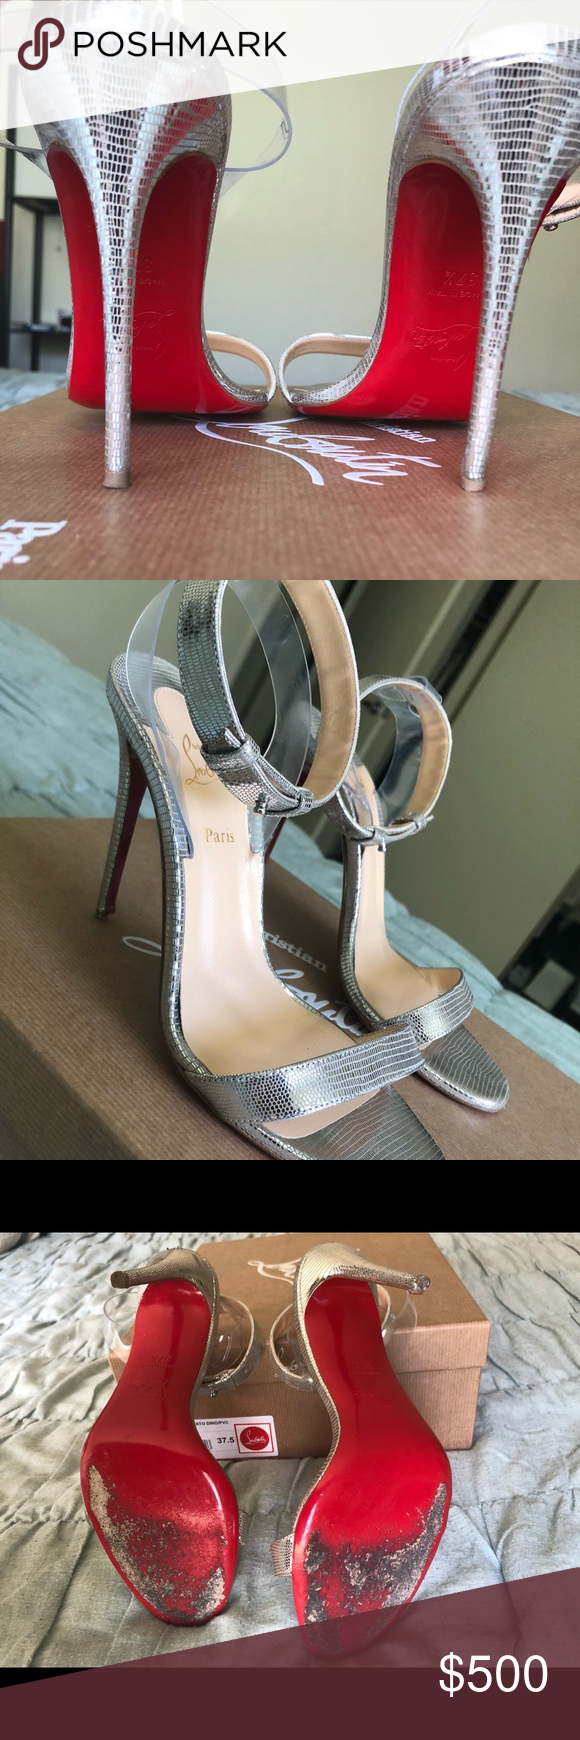 low priced 5ff38 ca5b0 Jonatina Christian Louboutin Red Bottom Size 37.5 Silver and ...